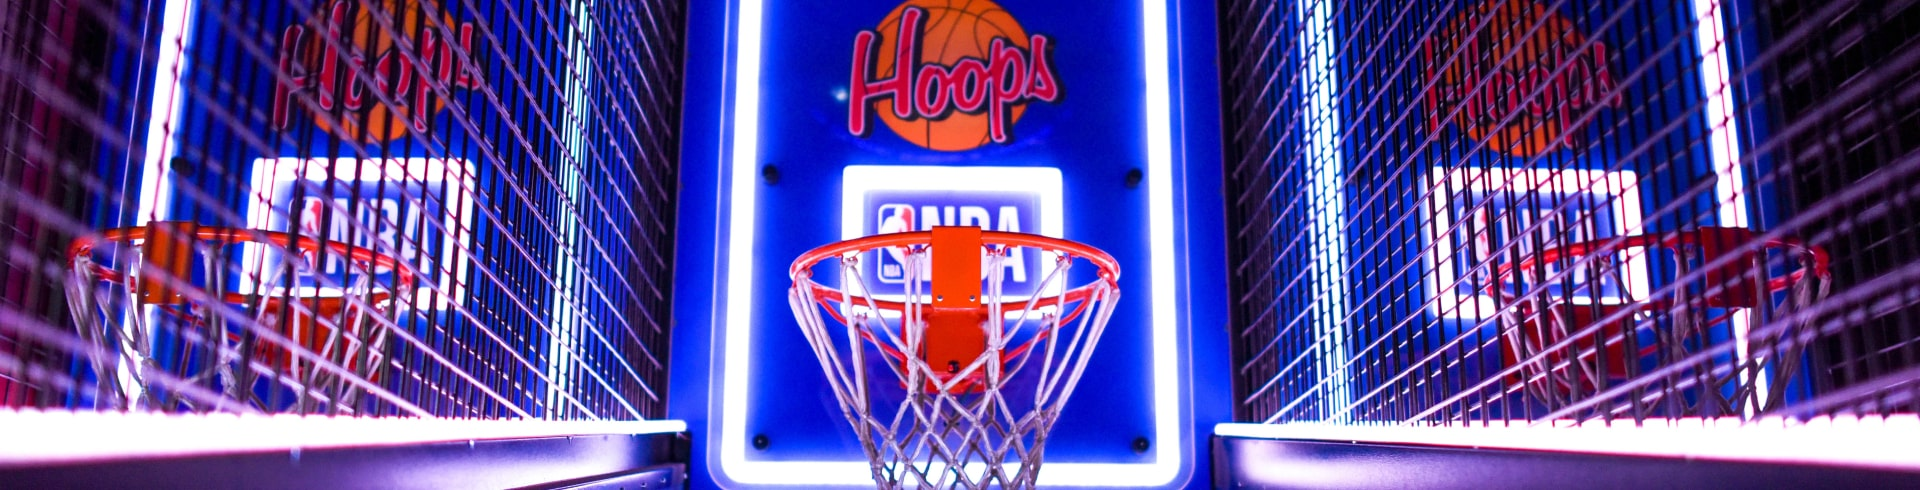 basketball game in arcade